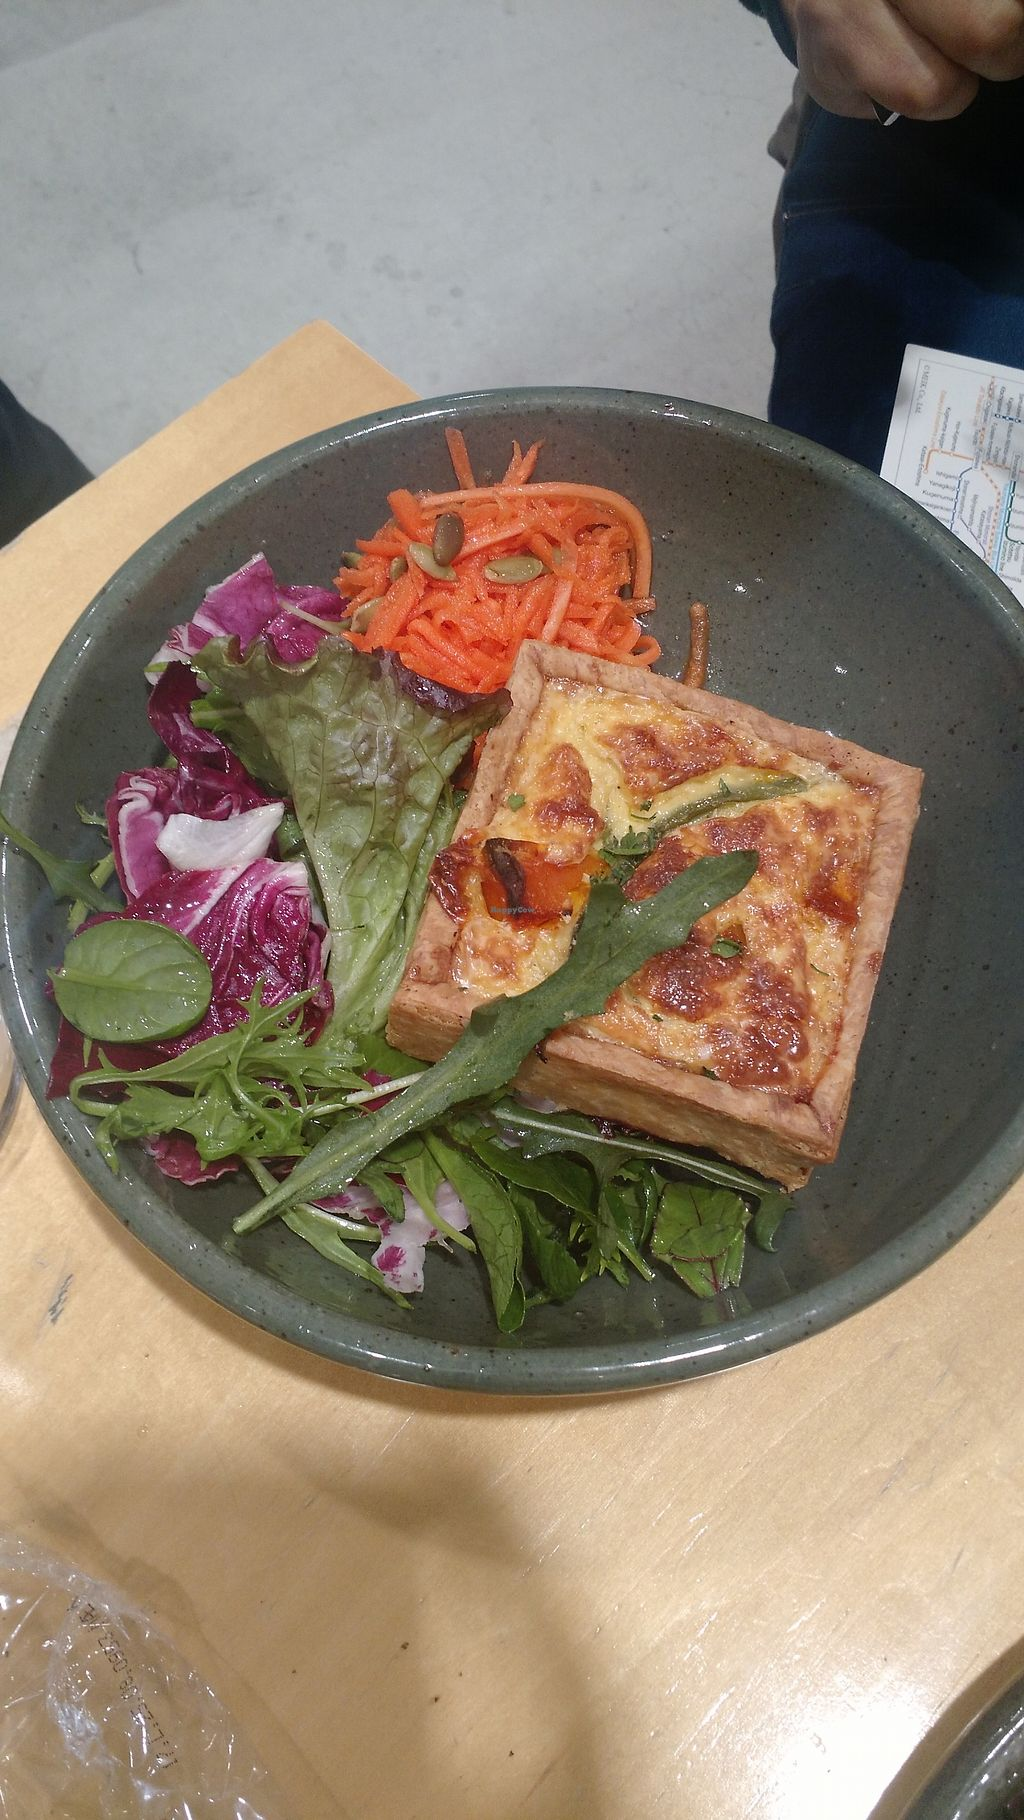 """Photo of Rose Bakery  by <a href=""""/members/profile/paulinadana"""">paulinadana</a> <br/>Bread with cheese. Comes with salad. Good for vegetarians, not vegans <br/> February 8, 2018  - <a href='/contact/abuse/image/111498/356232'>Report</a>"""